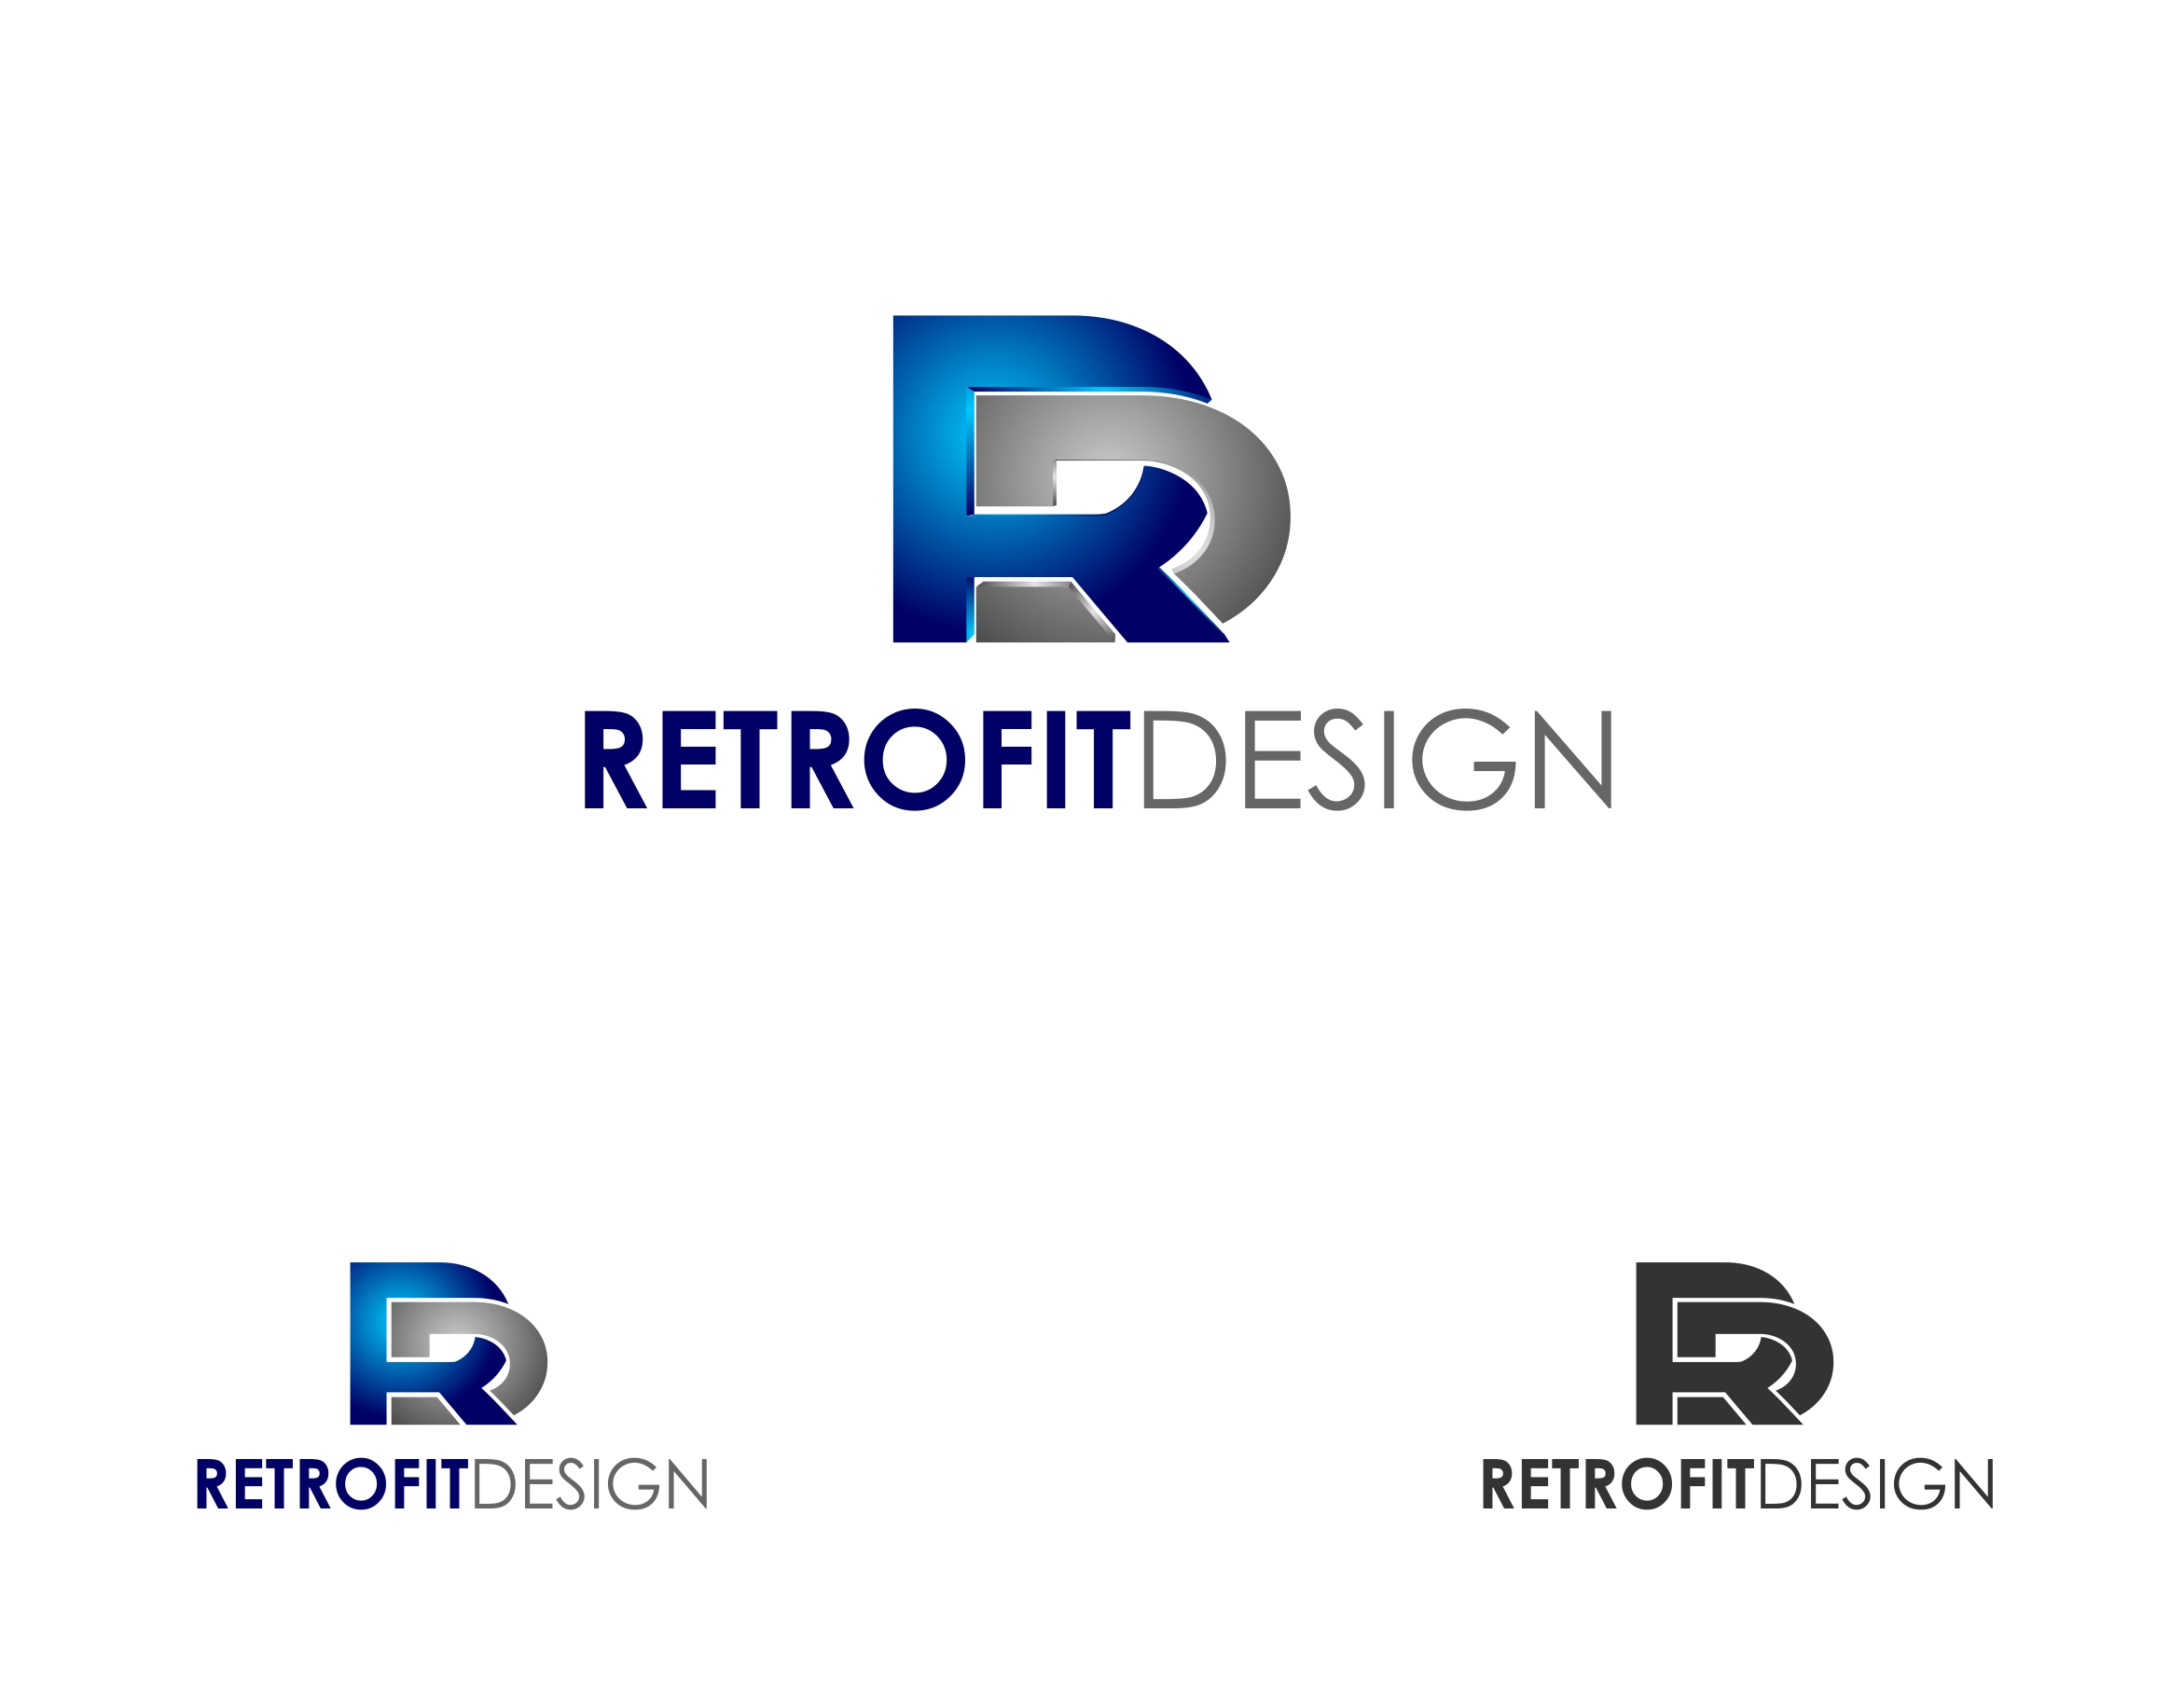 Logo Design by haidu - Entry No. 187 in the Logo Design Contest Inspiring Logo Design for retrofit design.